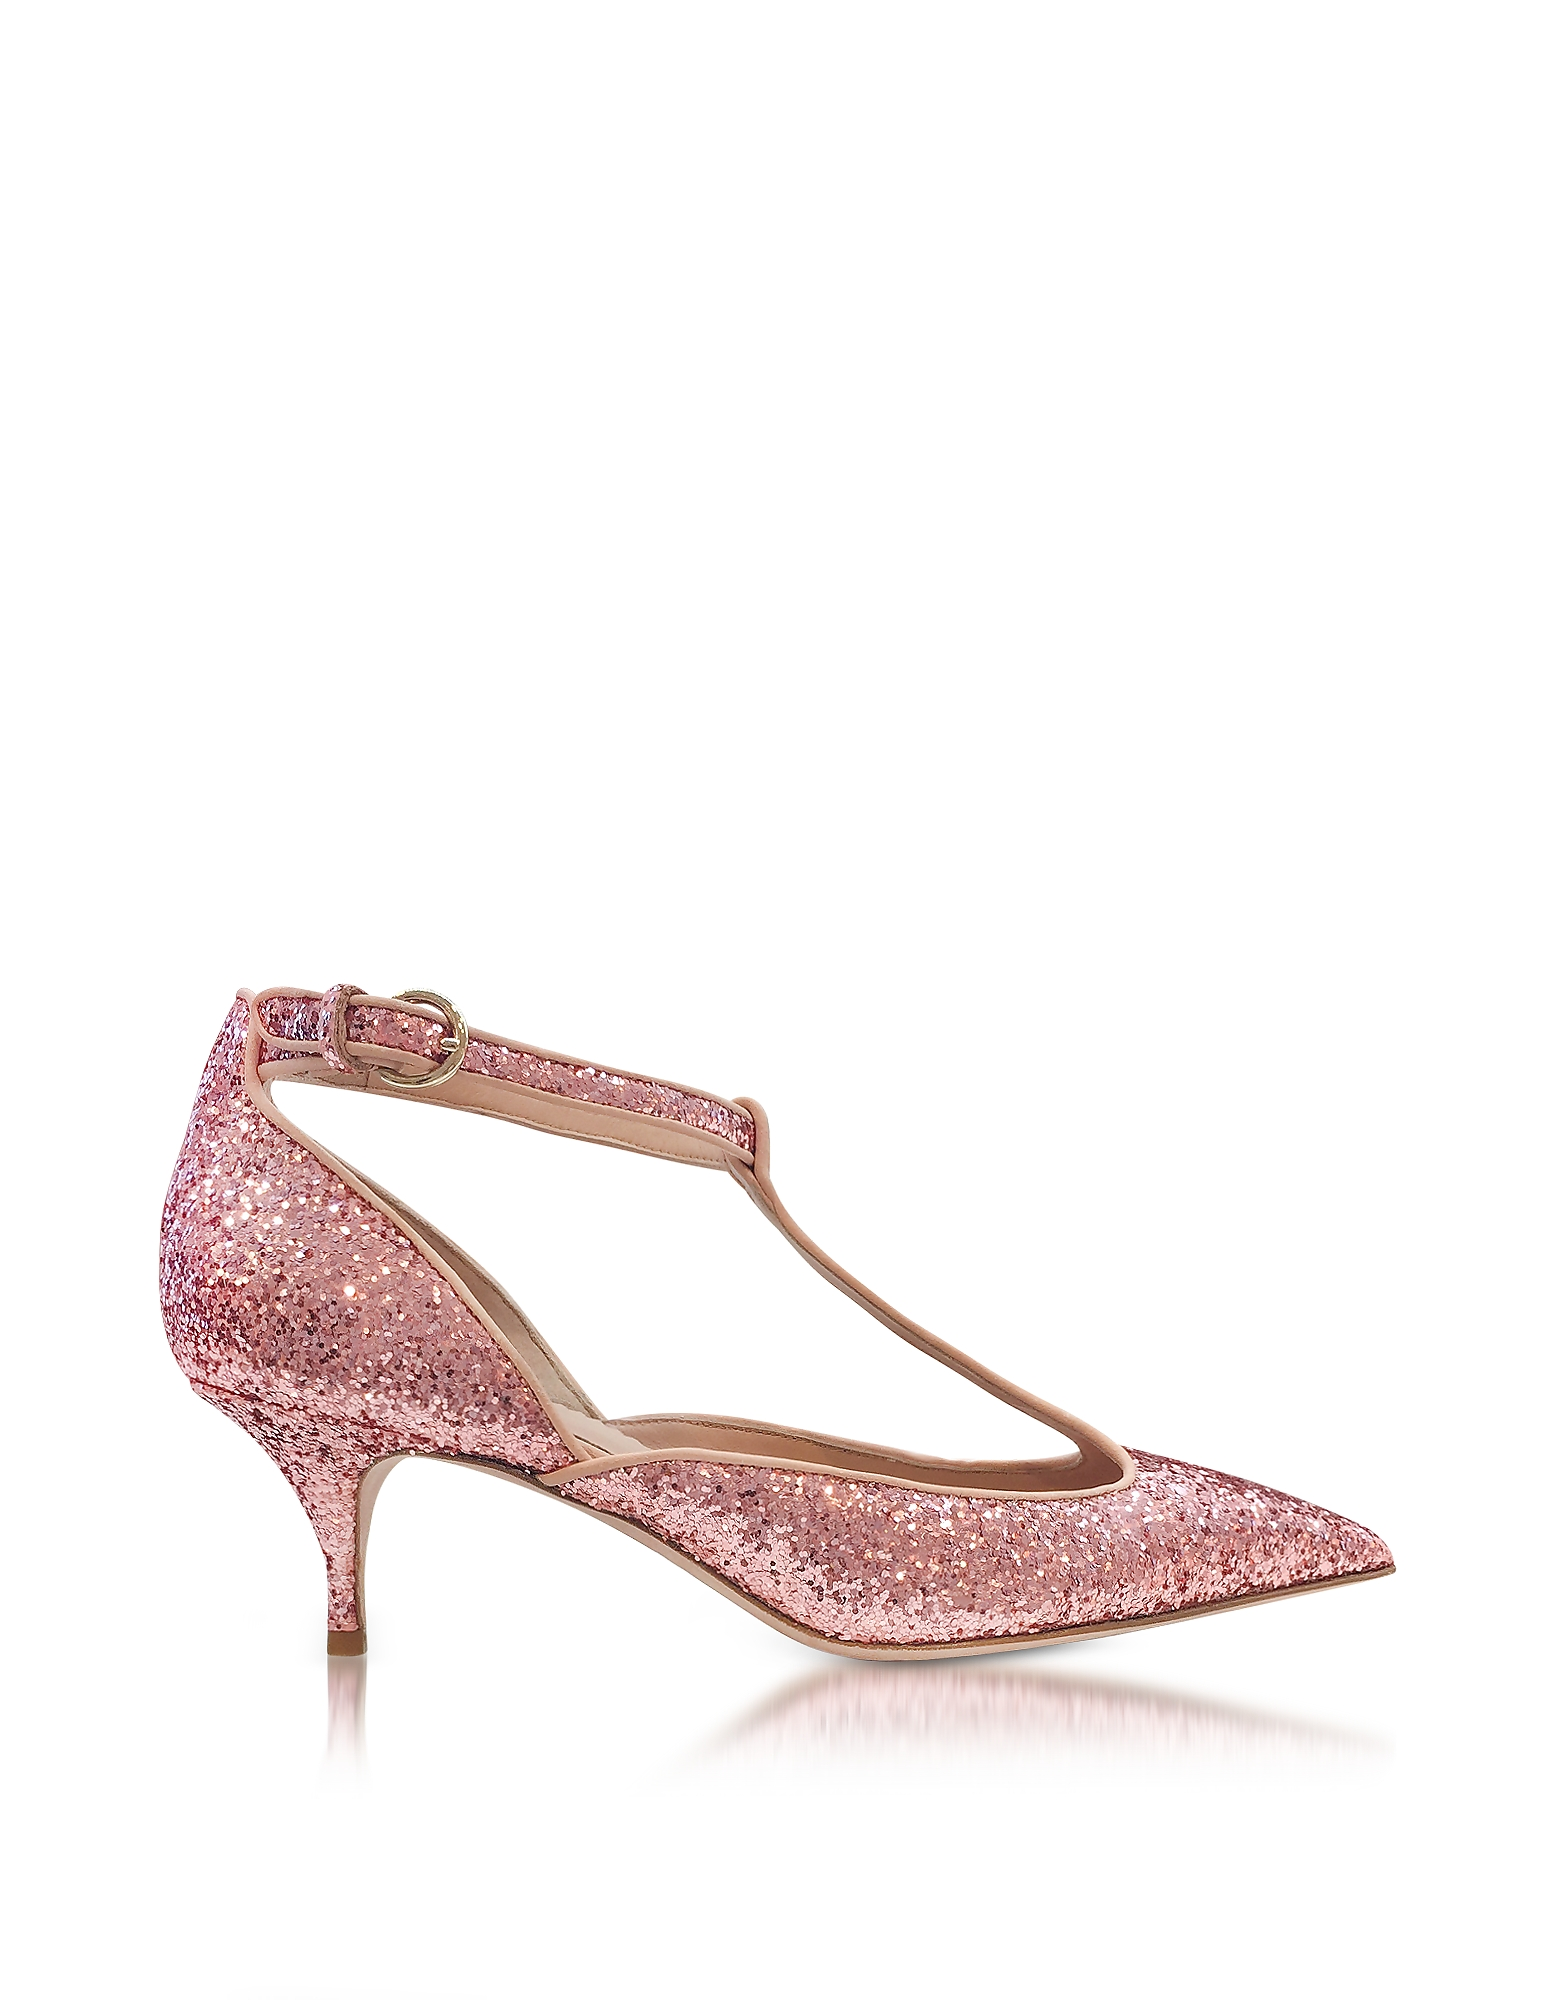 RED Valentino Shoes, Cammeo Glitter and Nude Leather Kitten